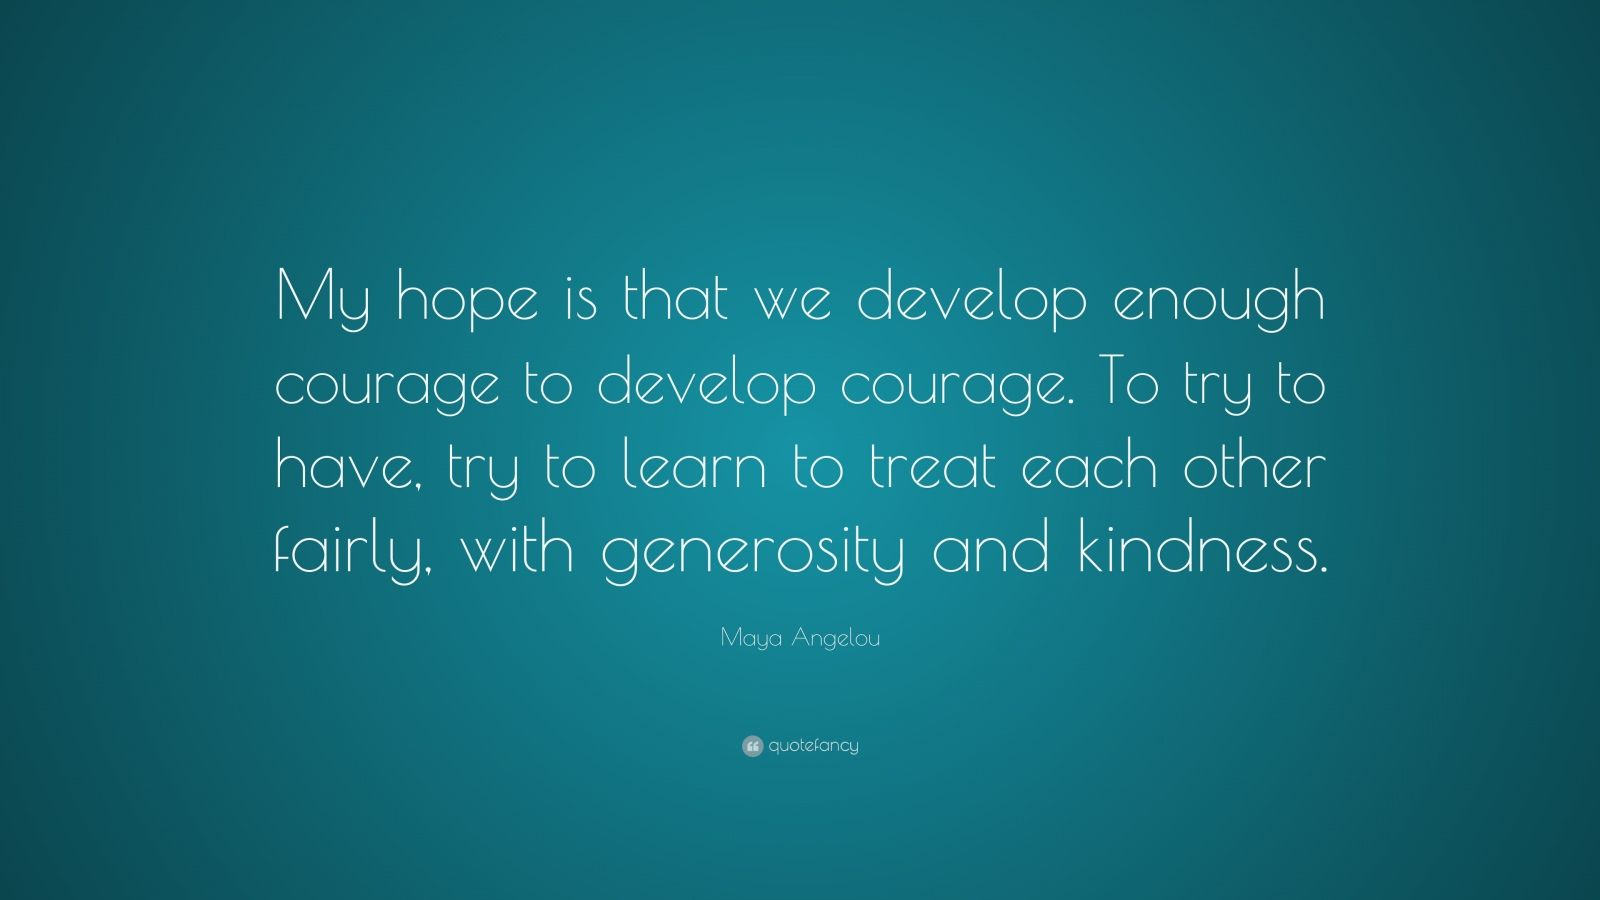 """Maya Angelou Quote: """"My hope is that we develop enough courage to develop courage. To try to have, try to learn to treat each other fairly, with generosity and kindness."""""""